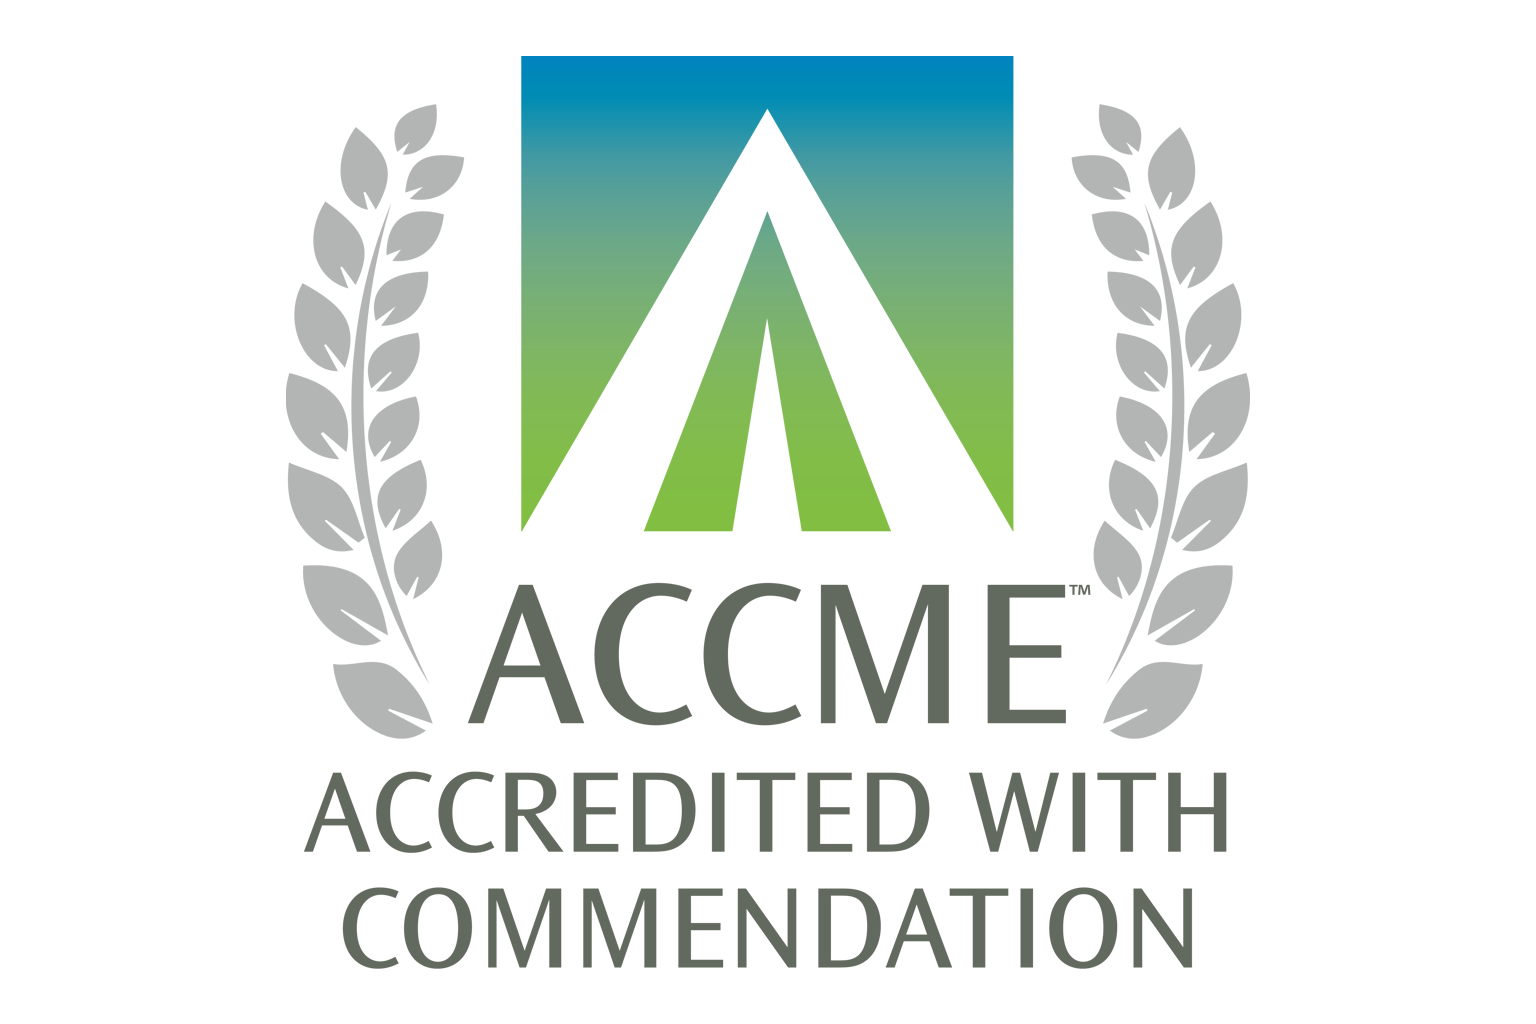 graphic of ACCME Accreditated with Commendation logo